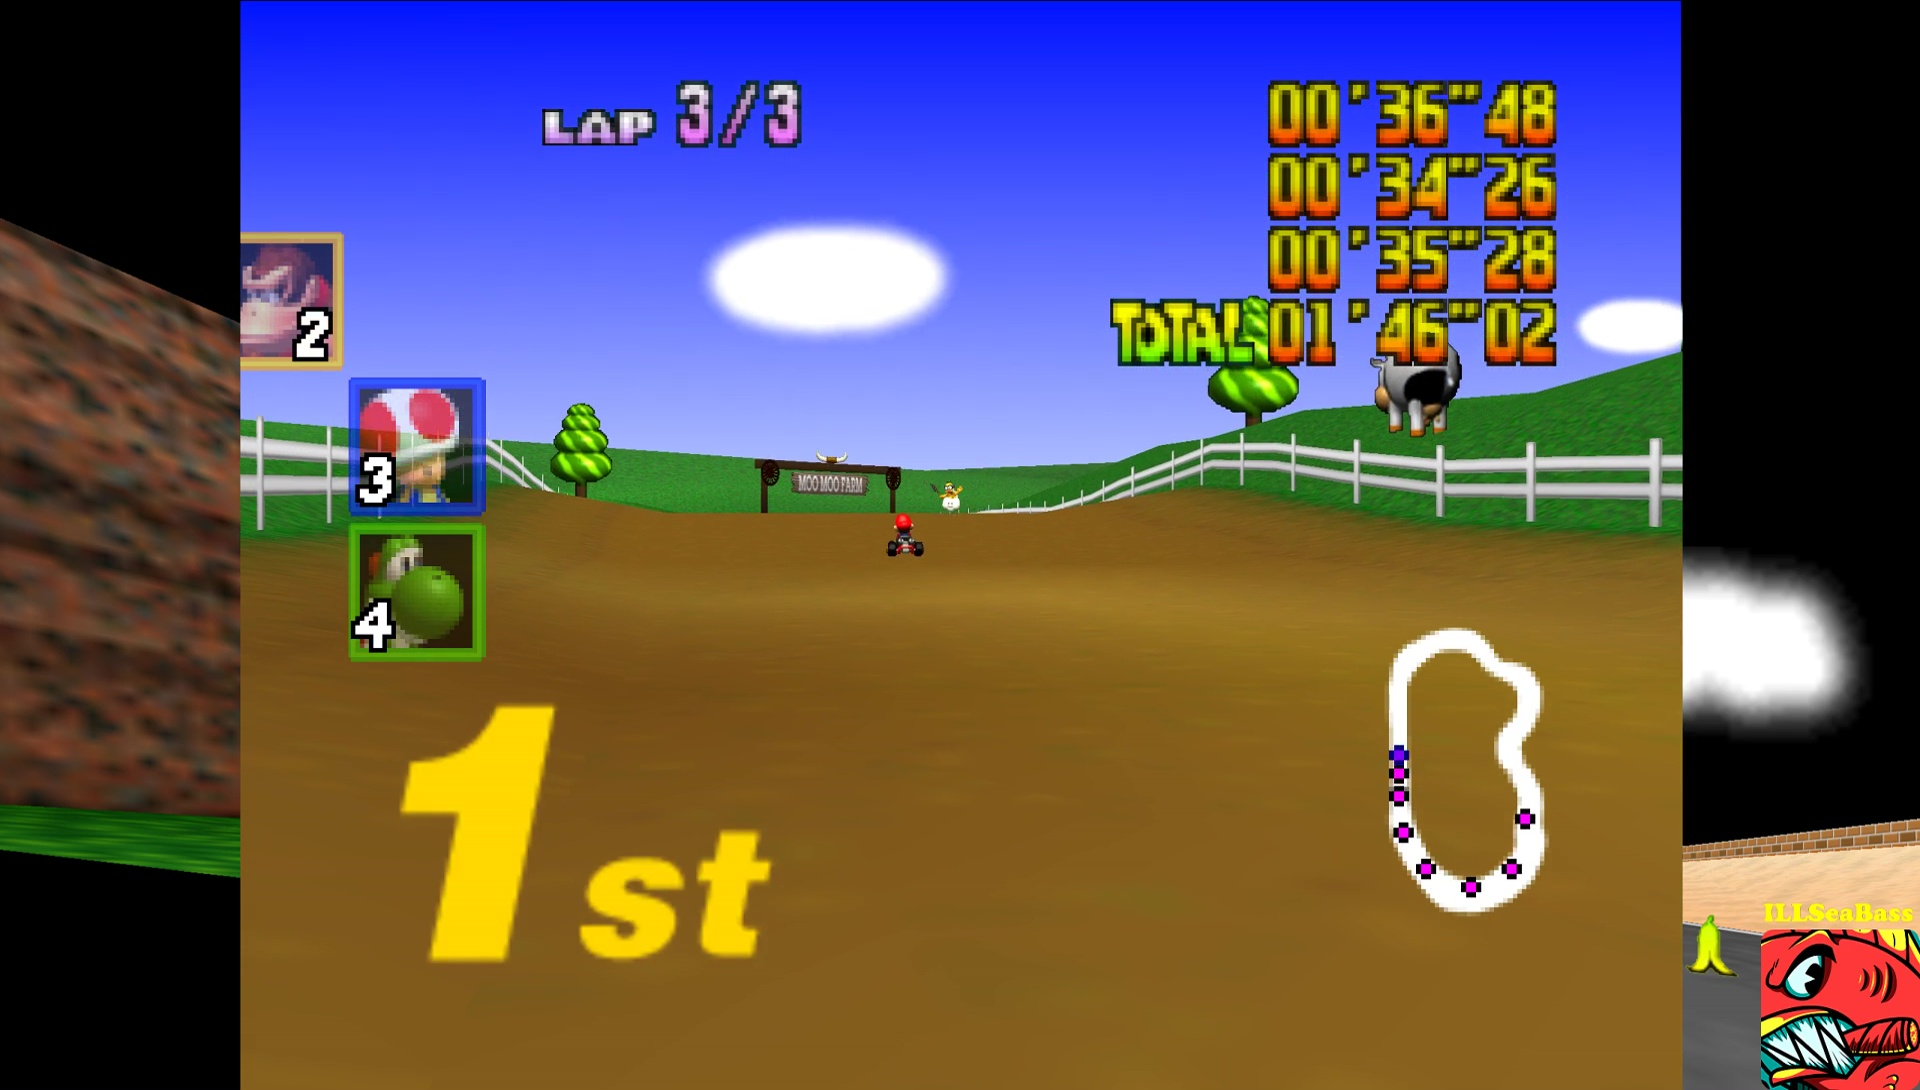 ILLSeaBass: Mario Kart 64: Moo Moo Farm [Lap Time] [50cc] (N64 Emulated) 0:00:34.26 points on 2017-05-29 12:34:05